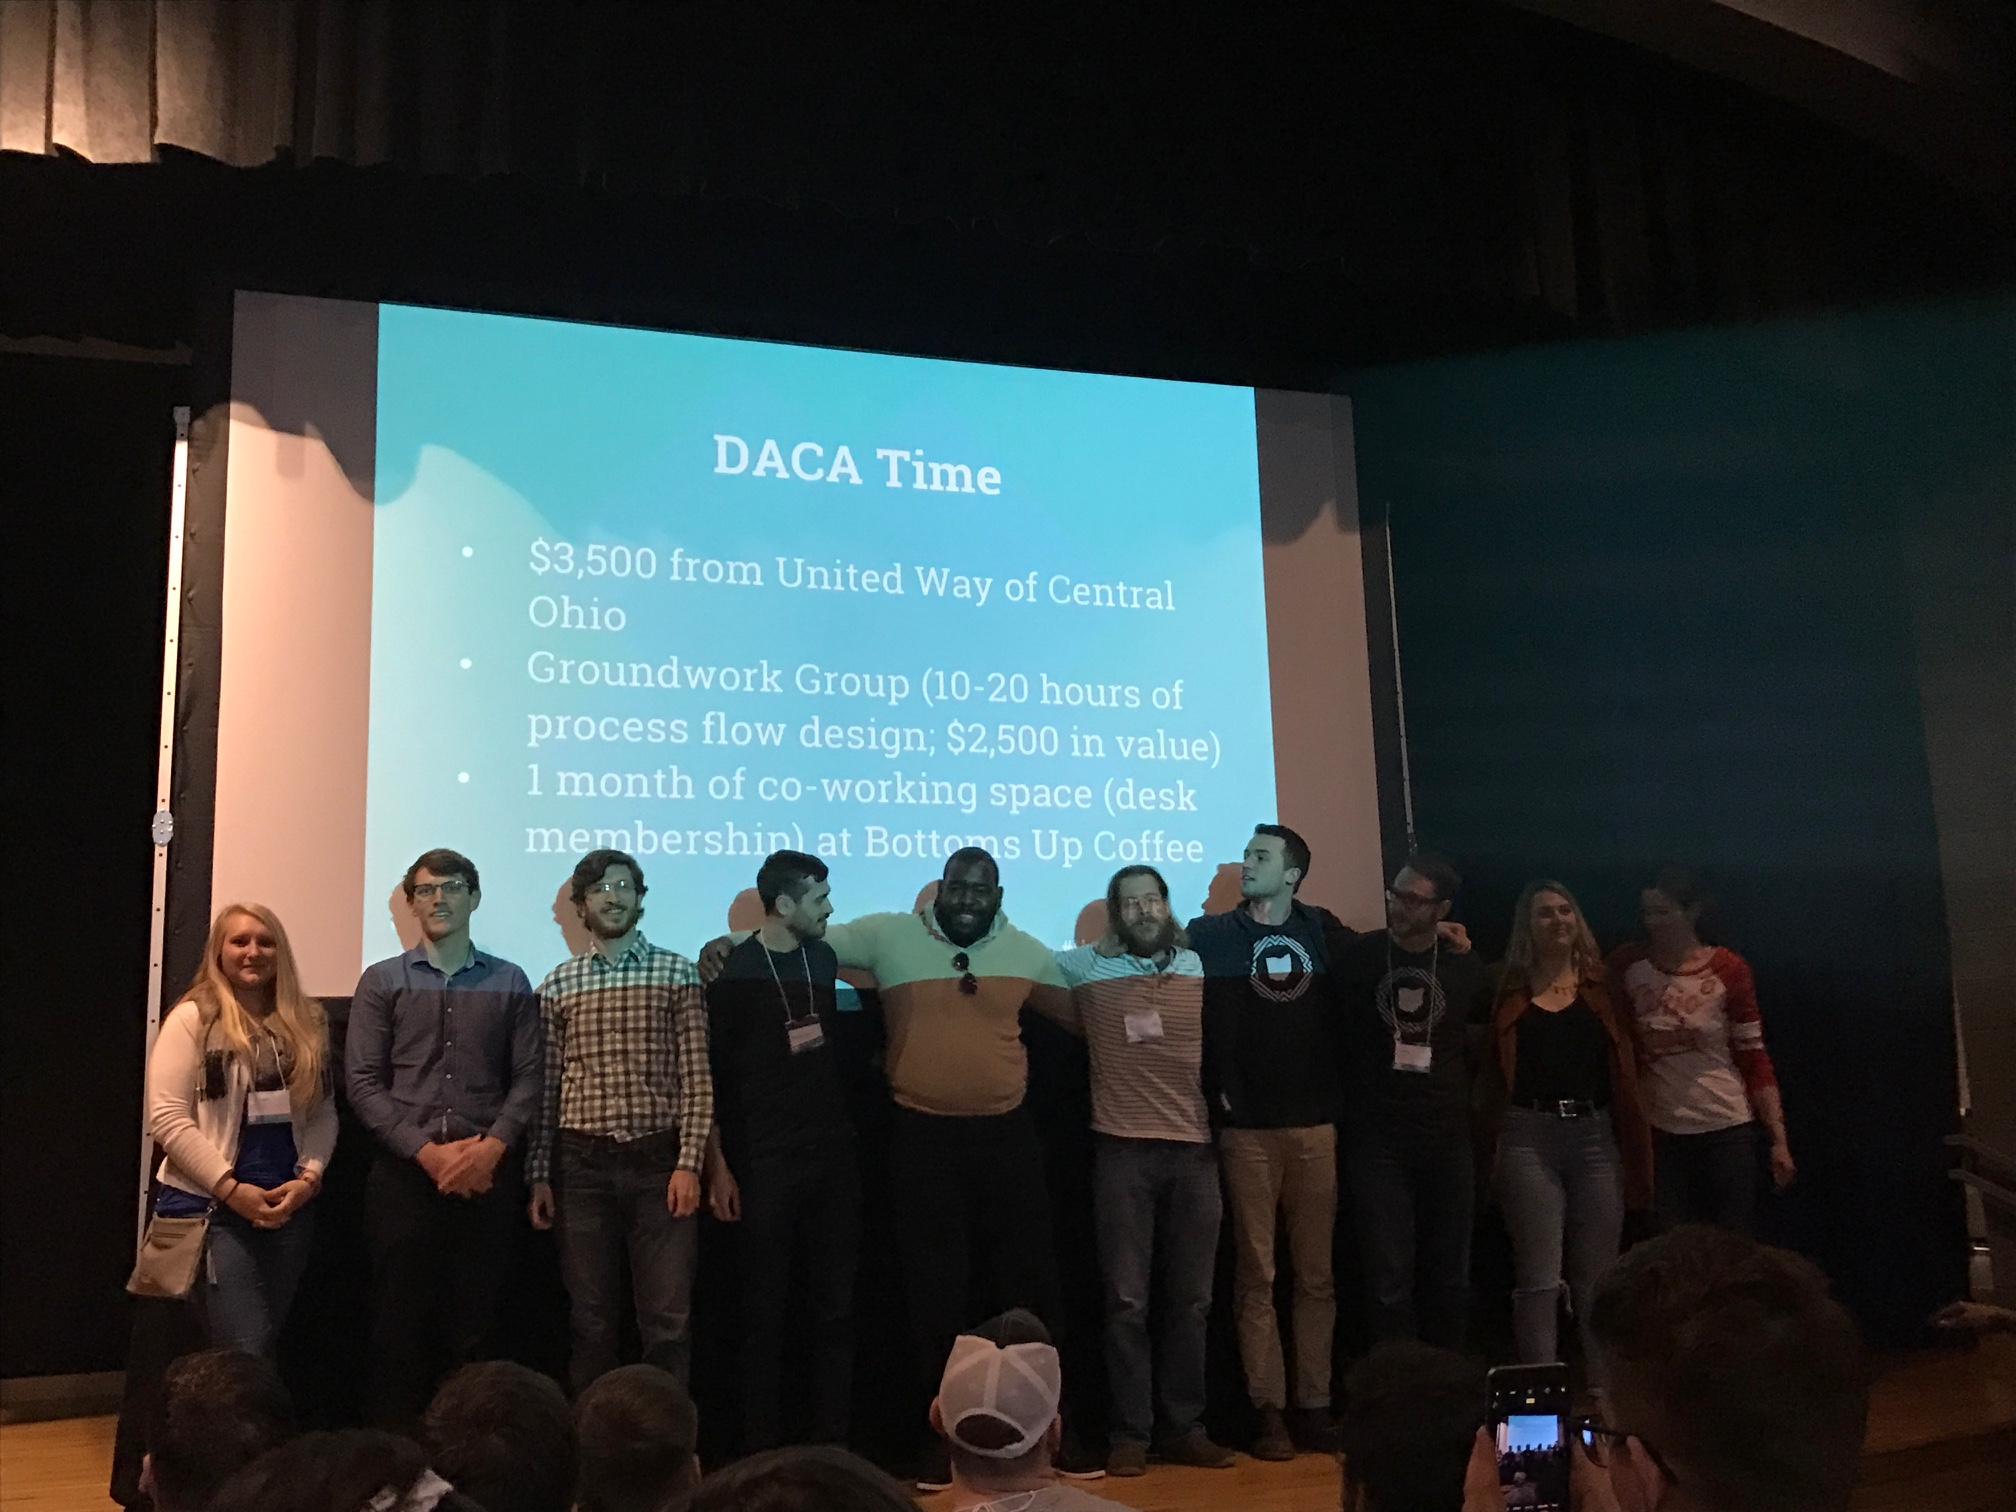 DACA Time on stage for the win!